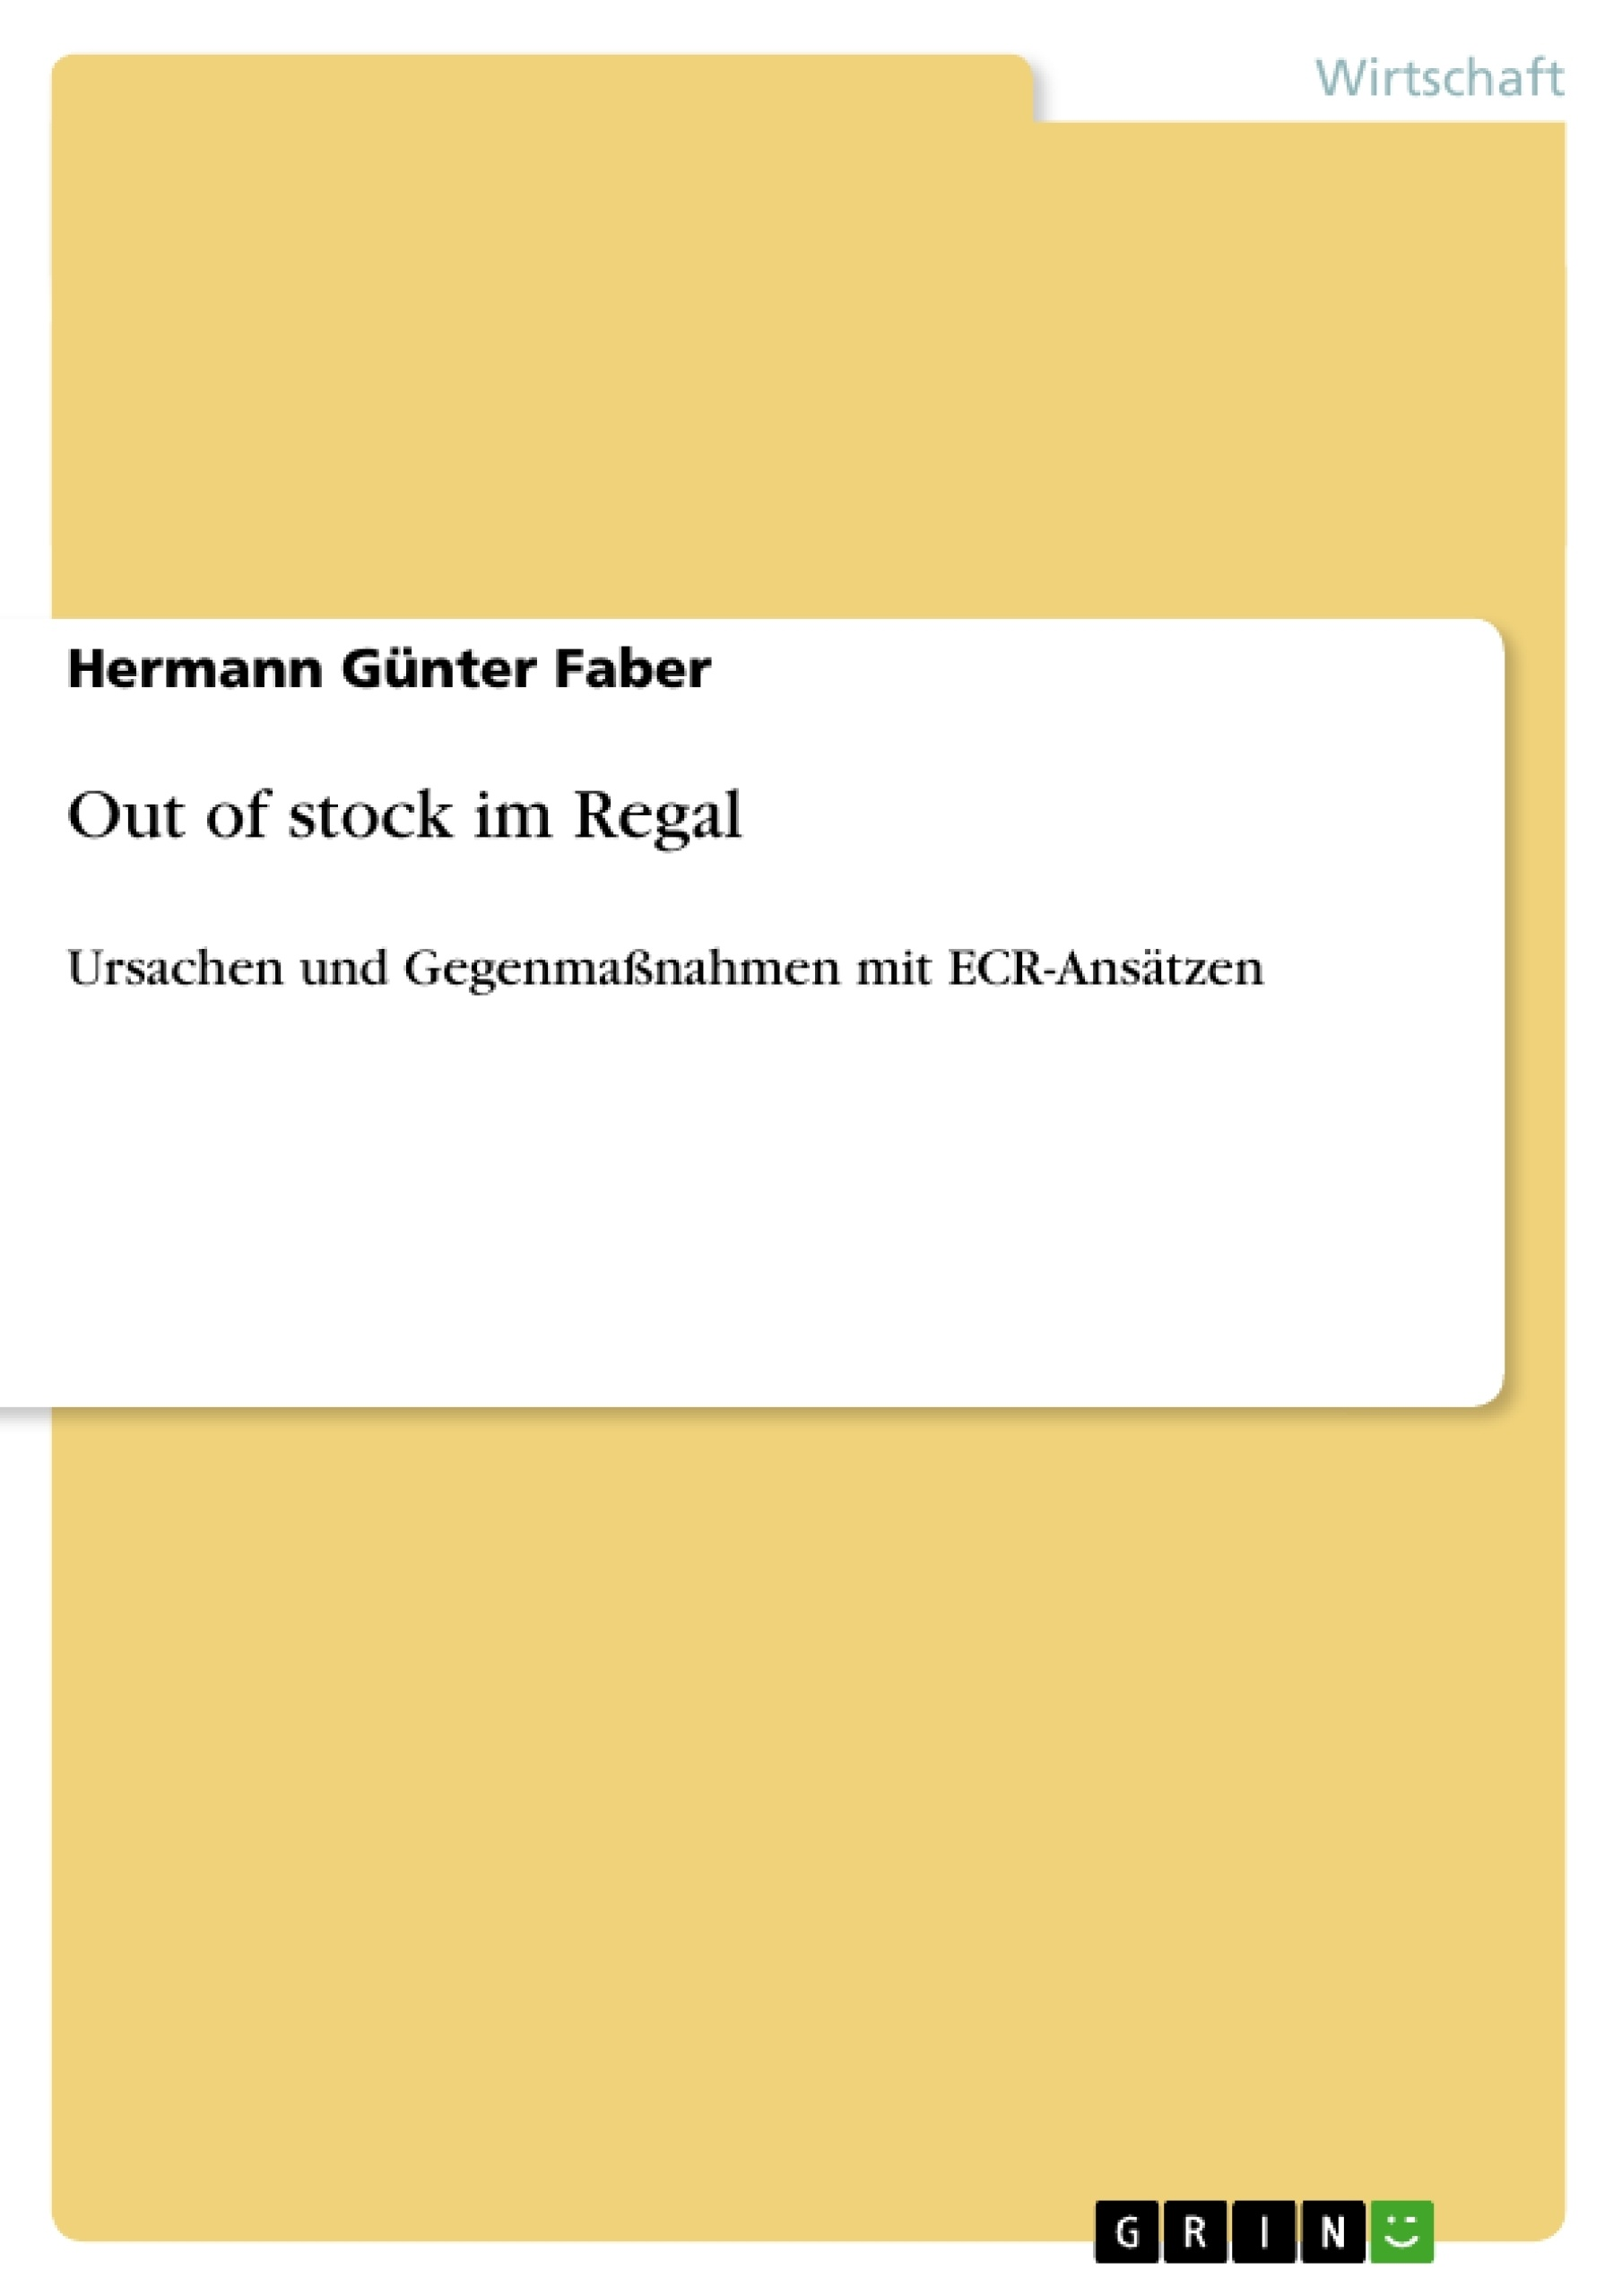 Titel: Out of stock im Regal